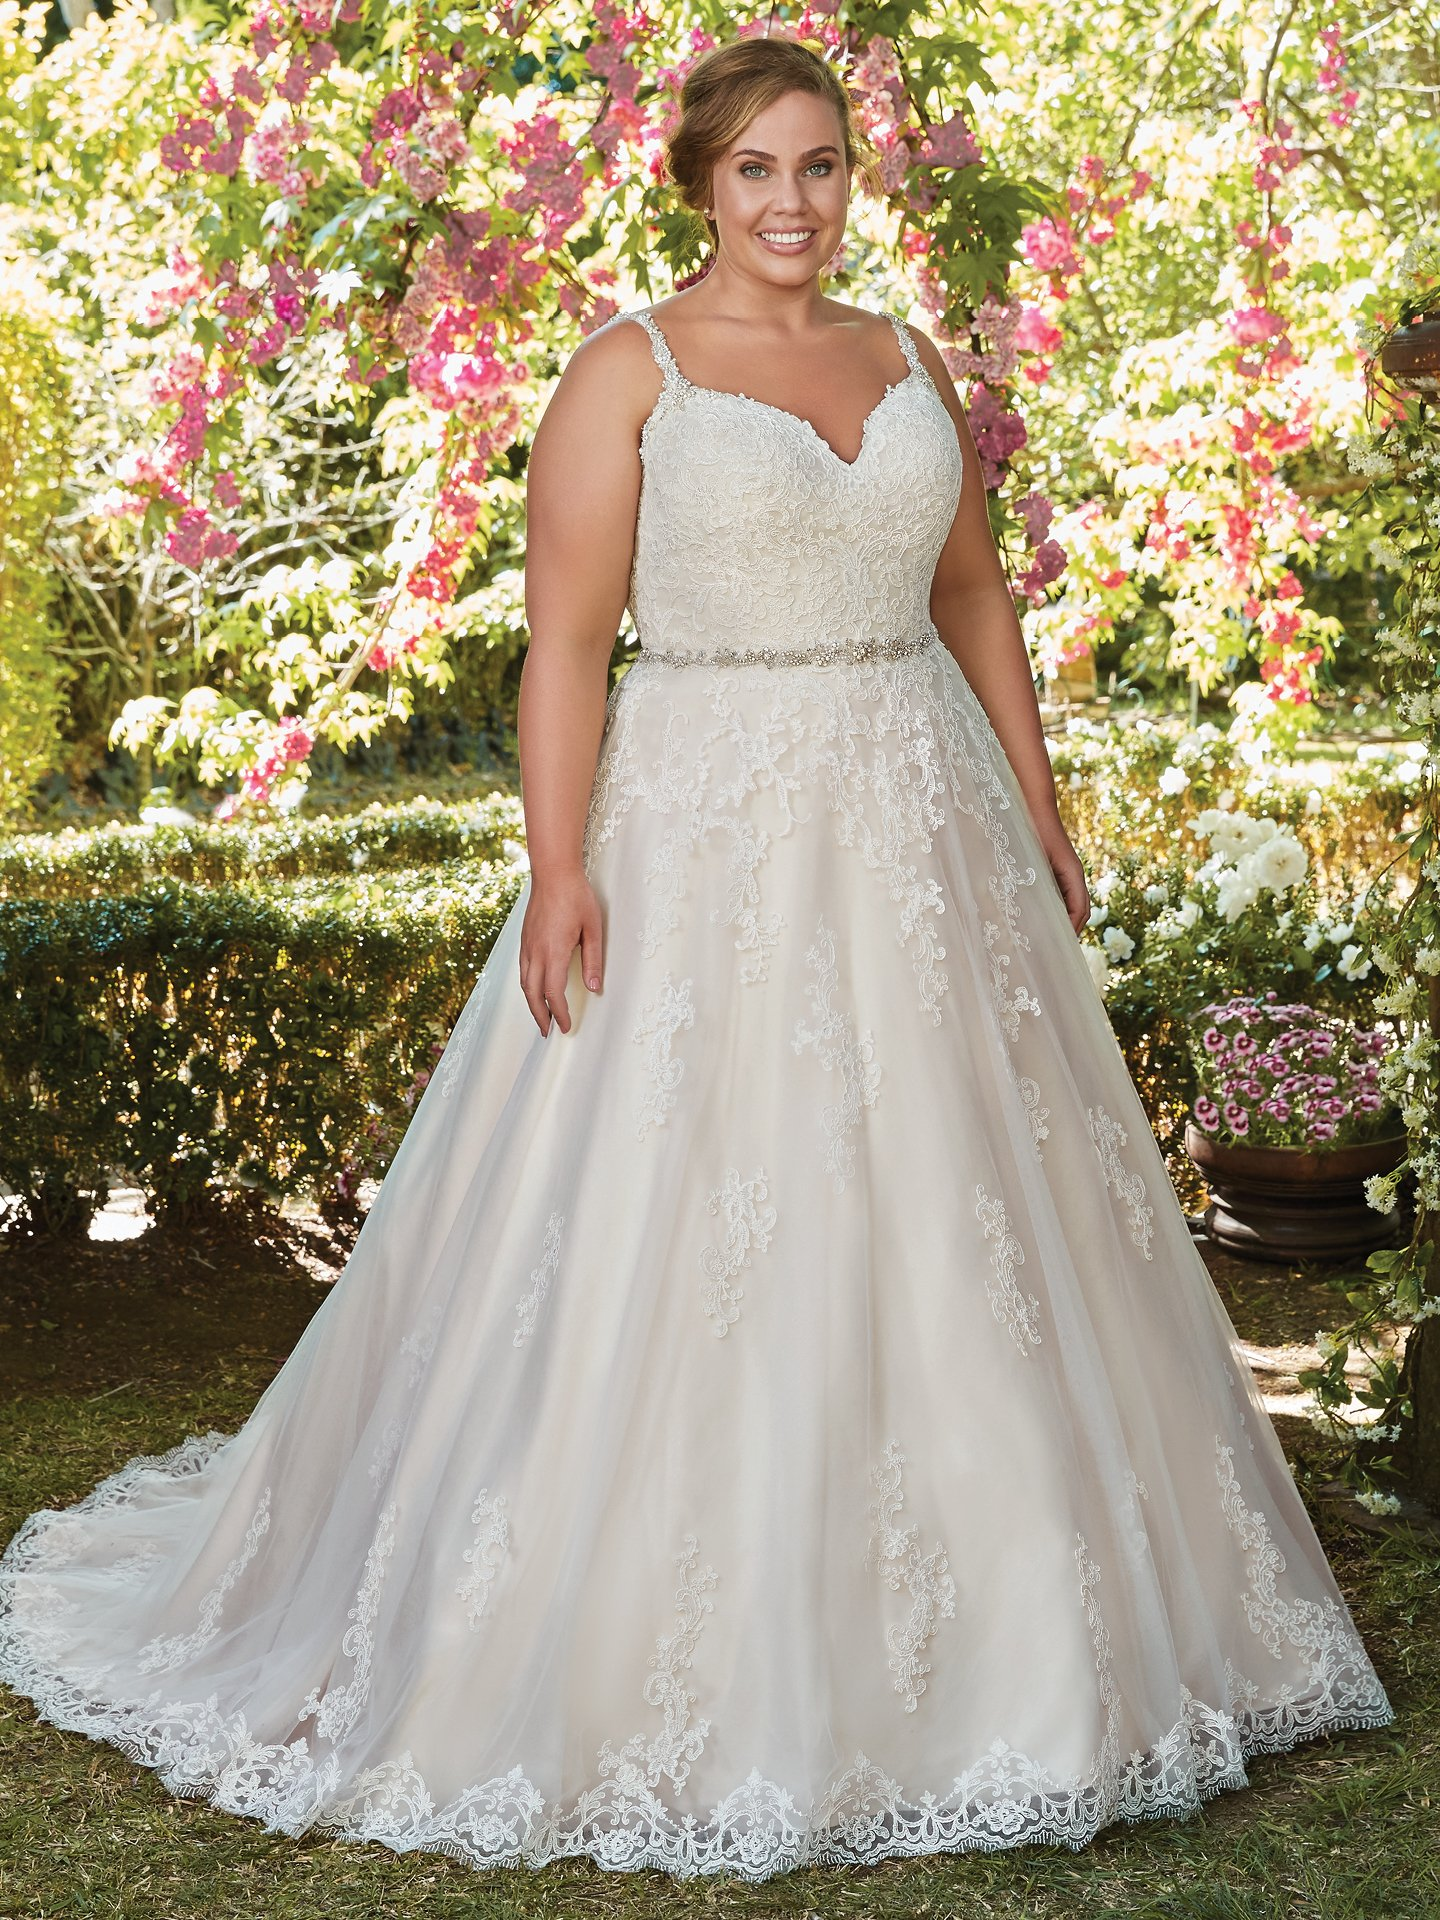 Allison by Rebecca Ingram. This gorgeous ballgown features a layer of lace appliqués over tulle. A V-neckline and open back with lace illusion trim add hints of alluring romance to this princess wedding dress. Accented with Swarovski crystal belt and embellished straps. Finished with covered buttons and zipper closure.